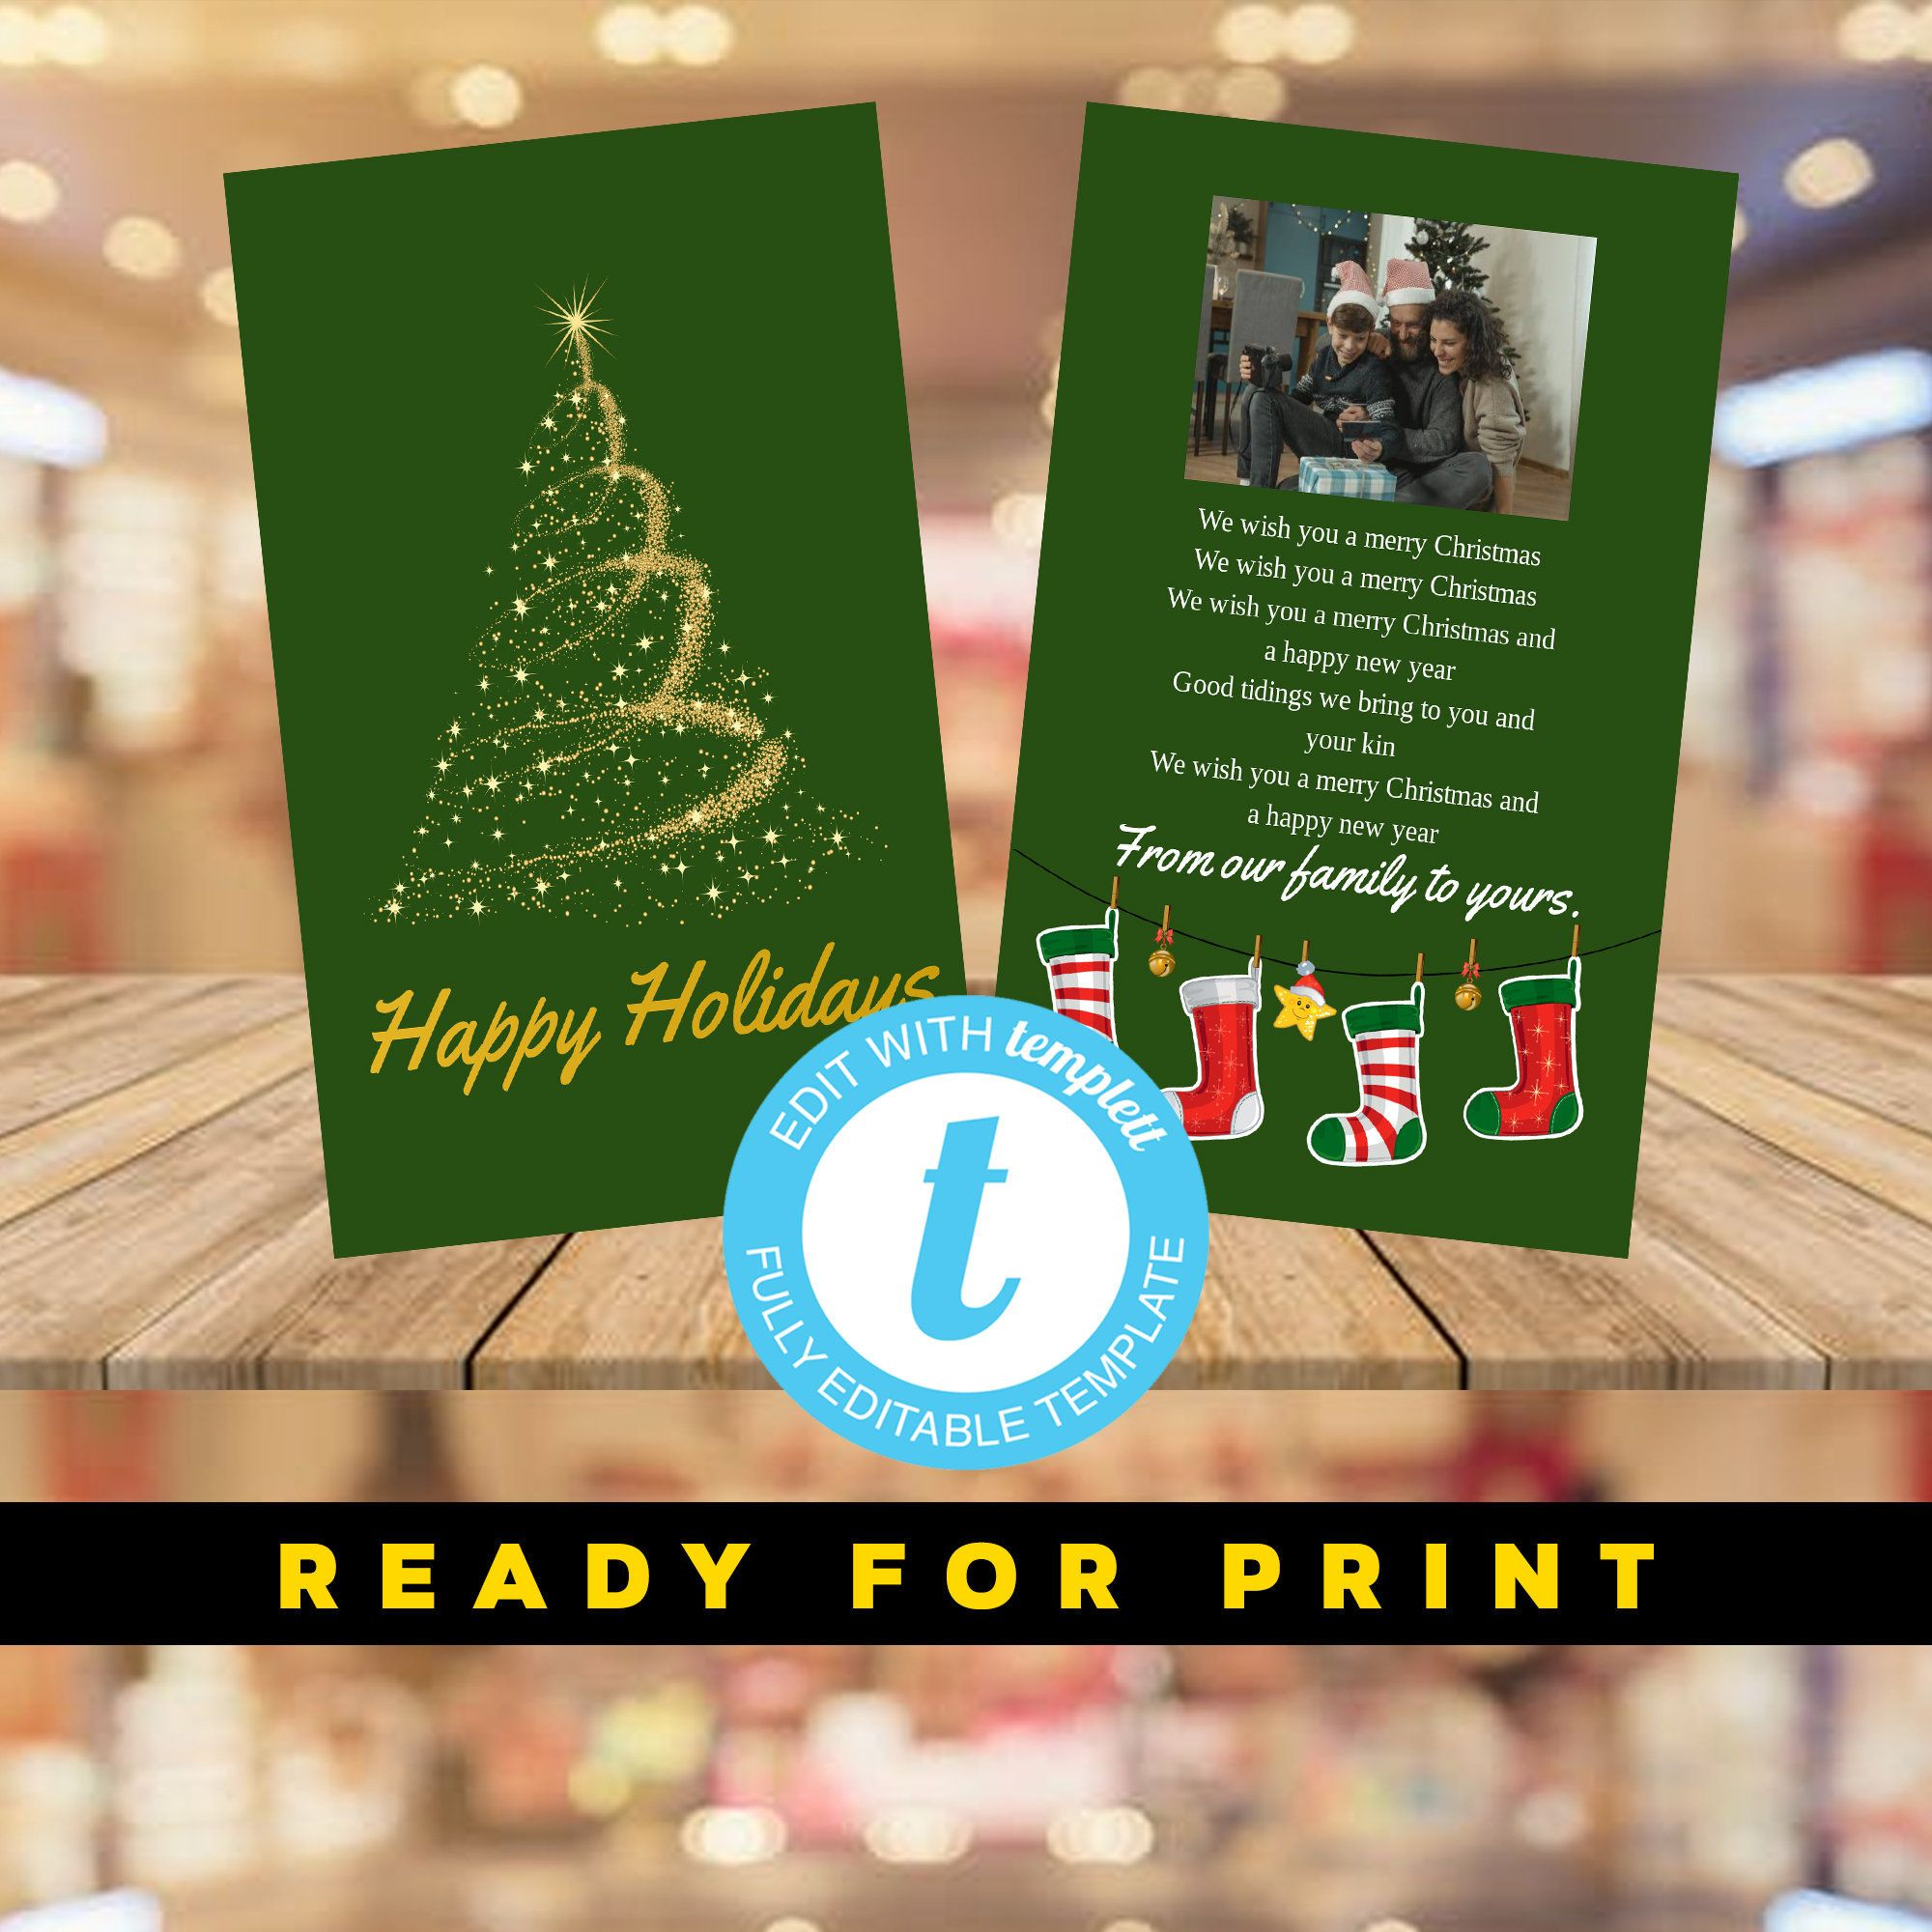 Printable Holiday Card Merry Christmas Happy Holidays And Etsy Printable Holiday Card Holiday Cards Christian Cards